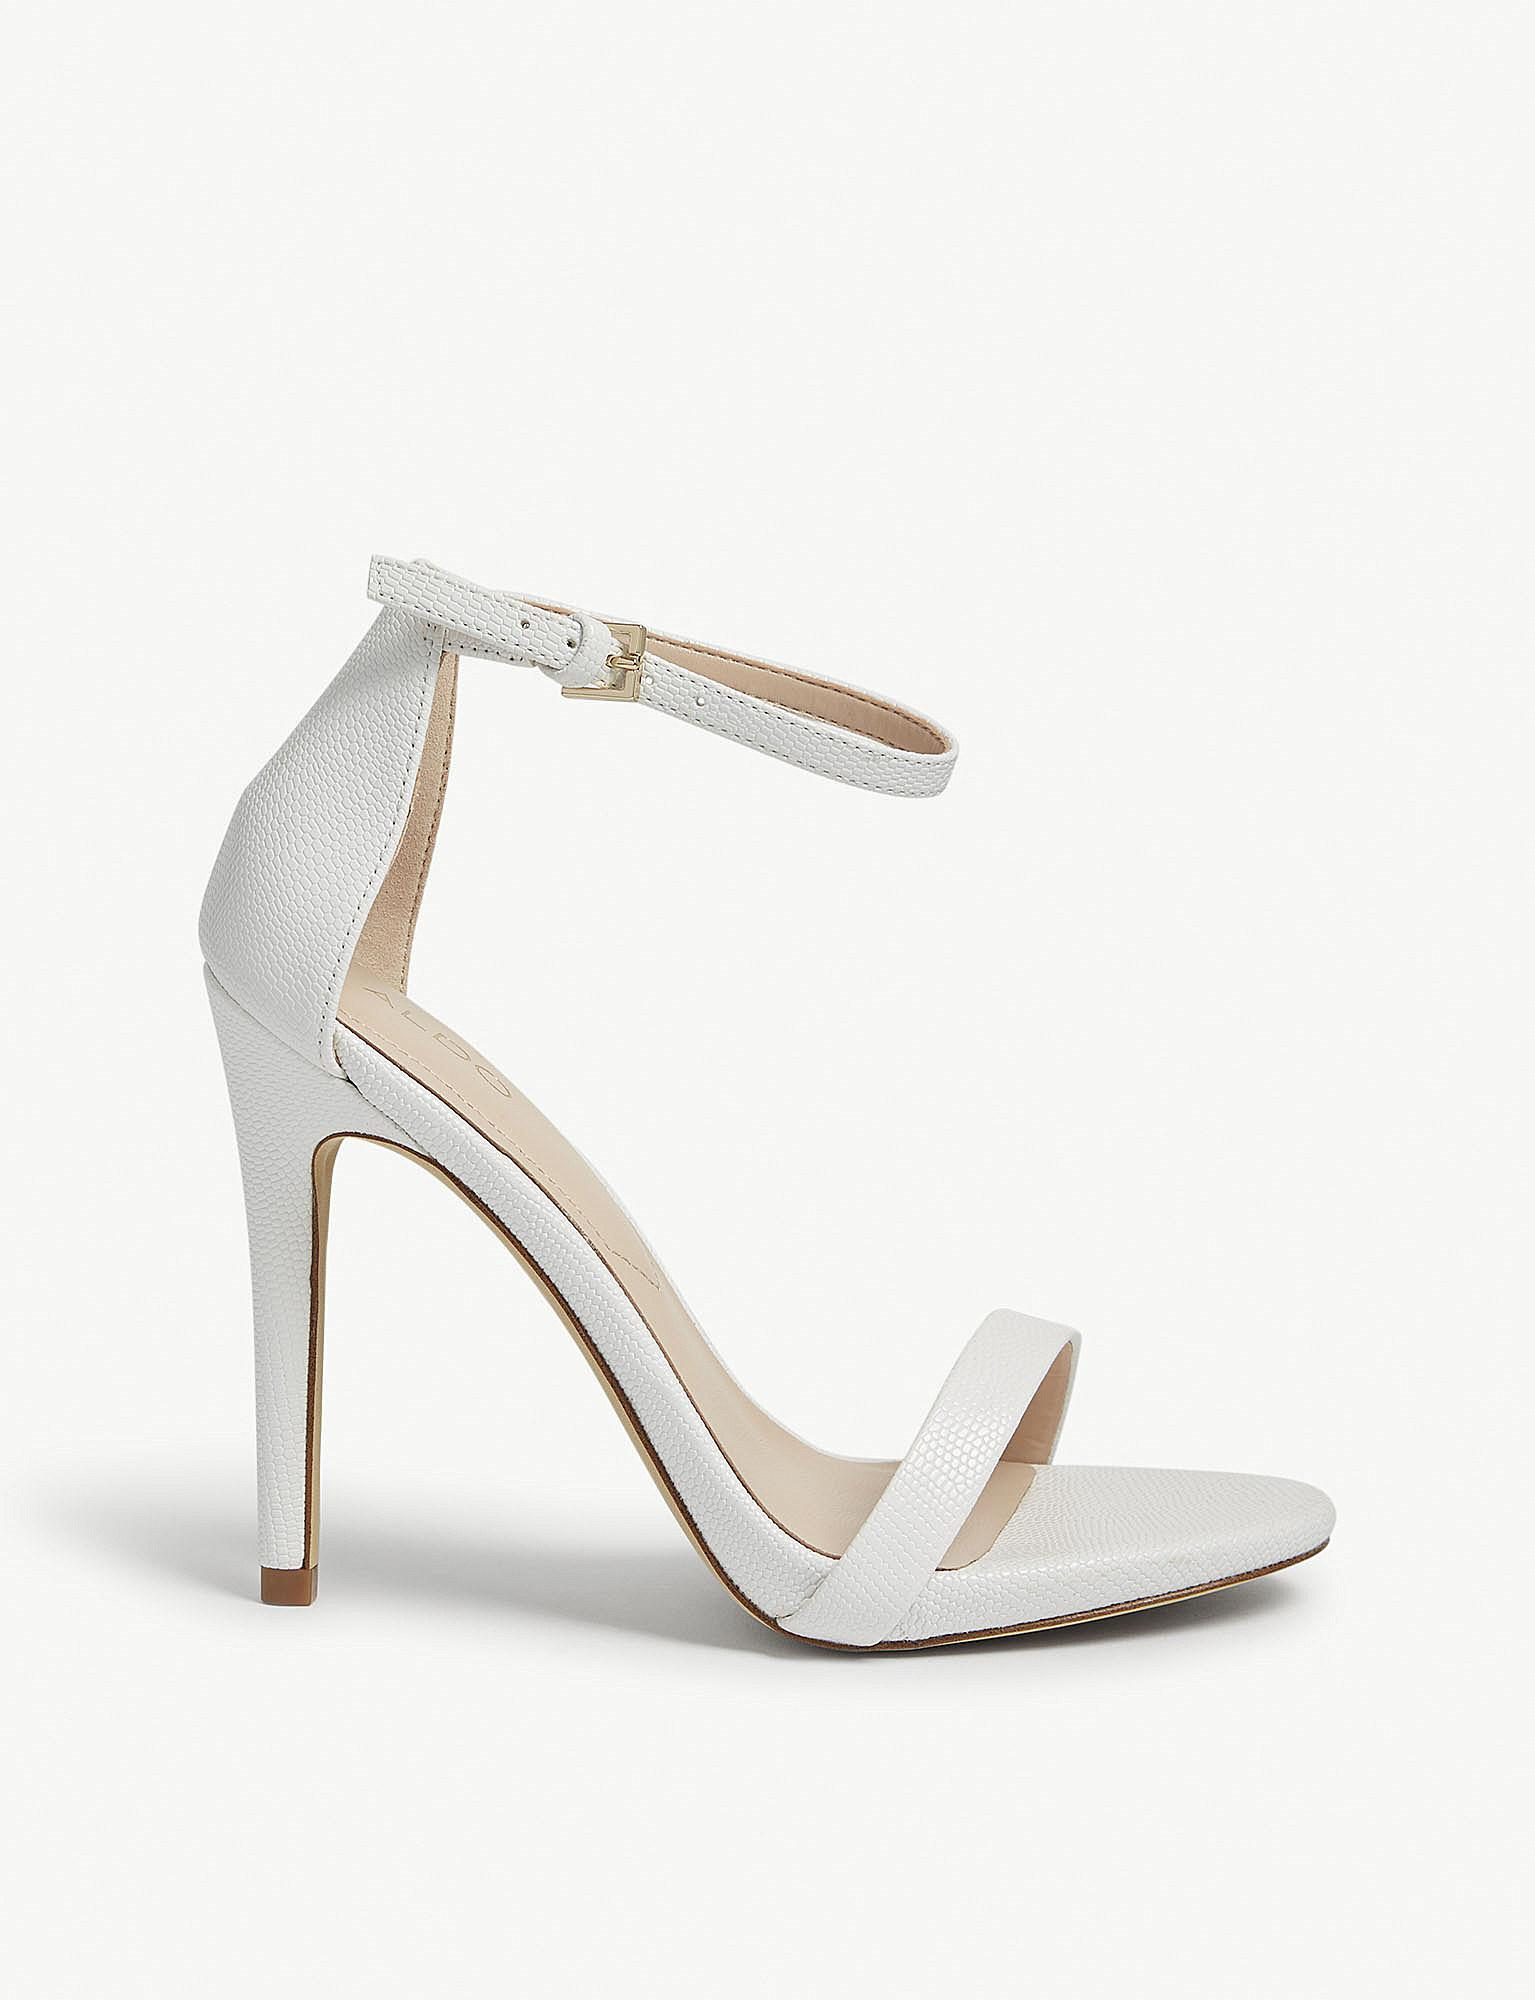 ce463187f542 ALDO Caraa High Ankle Strap Sandals in White - Lyst